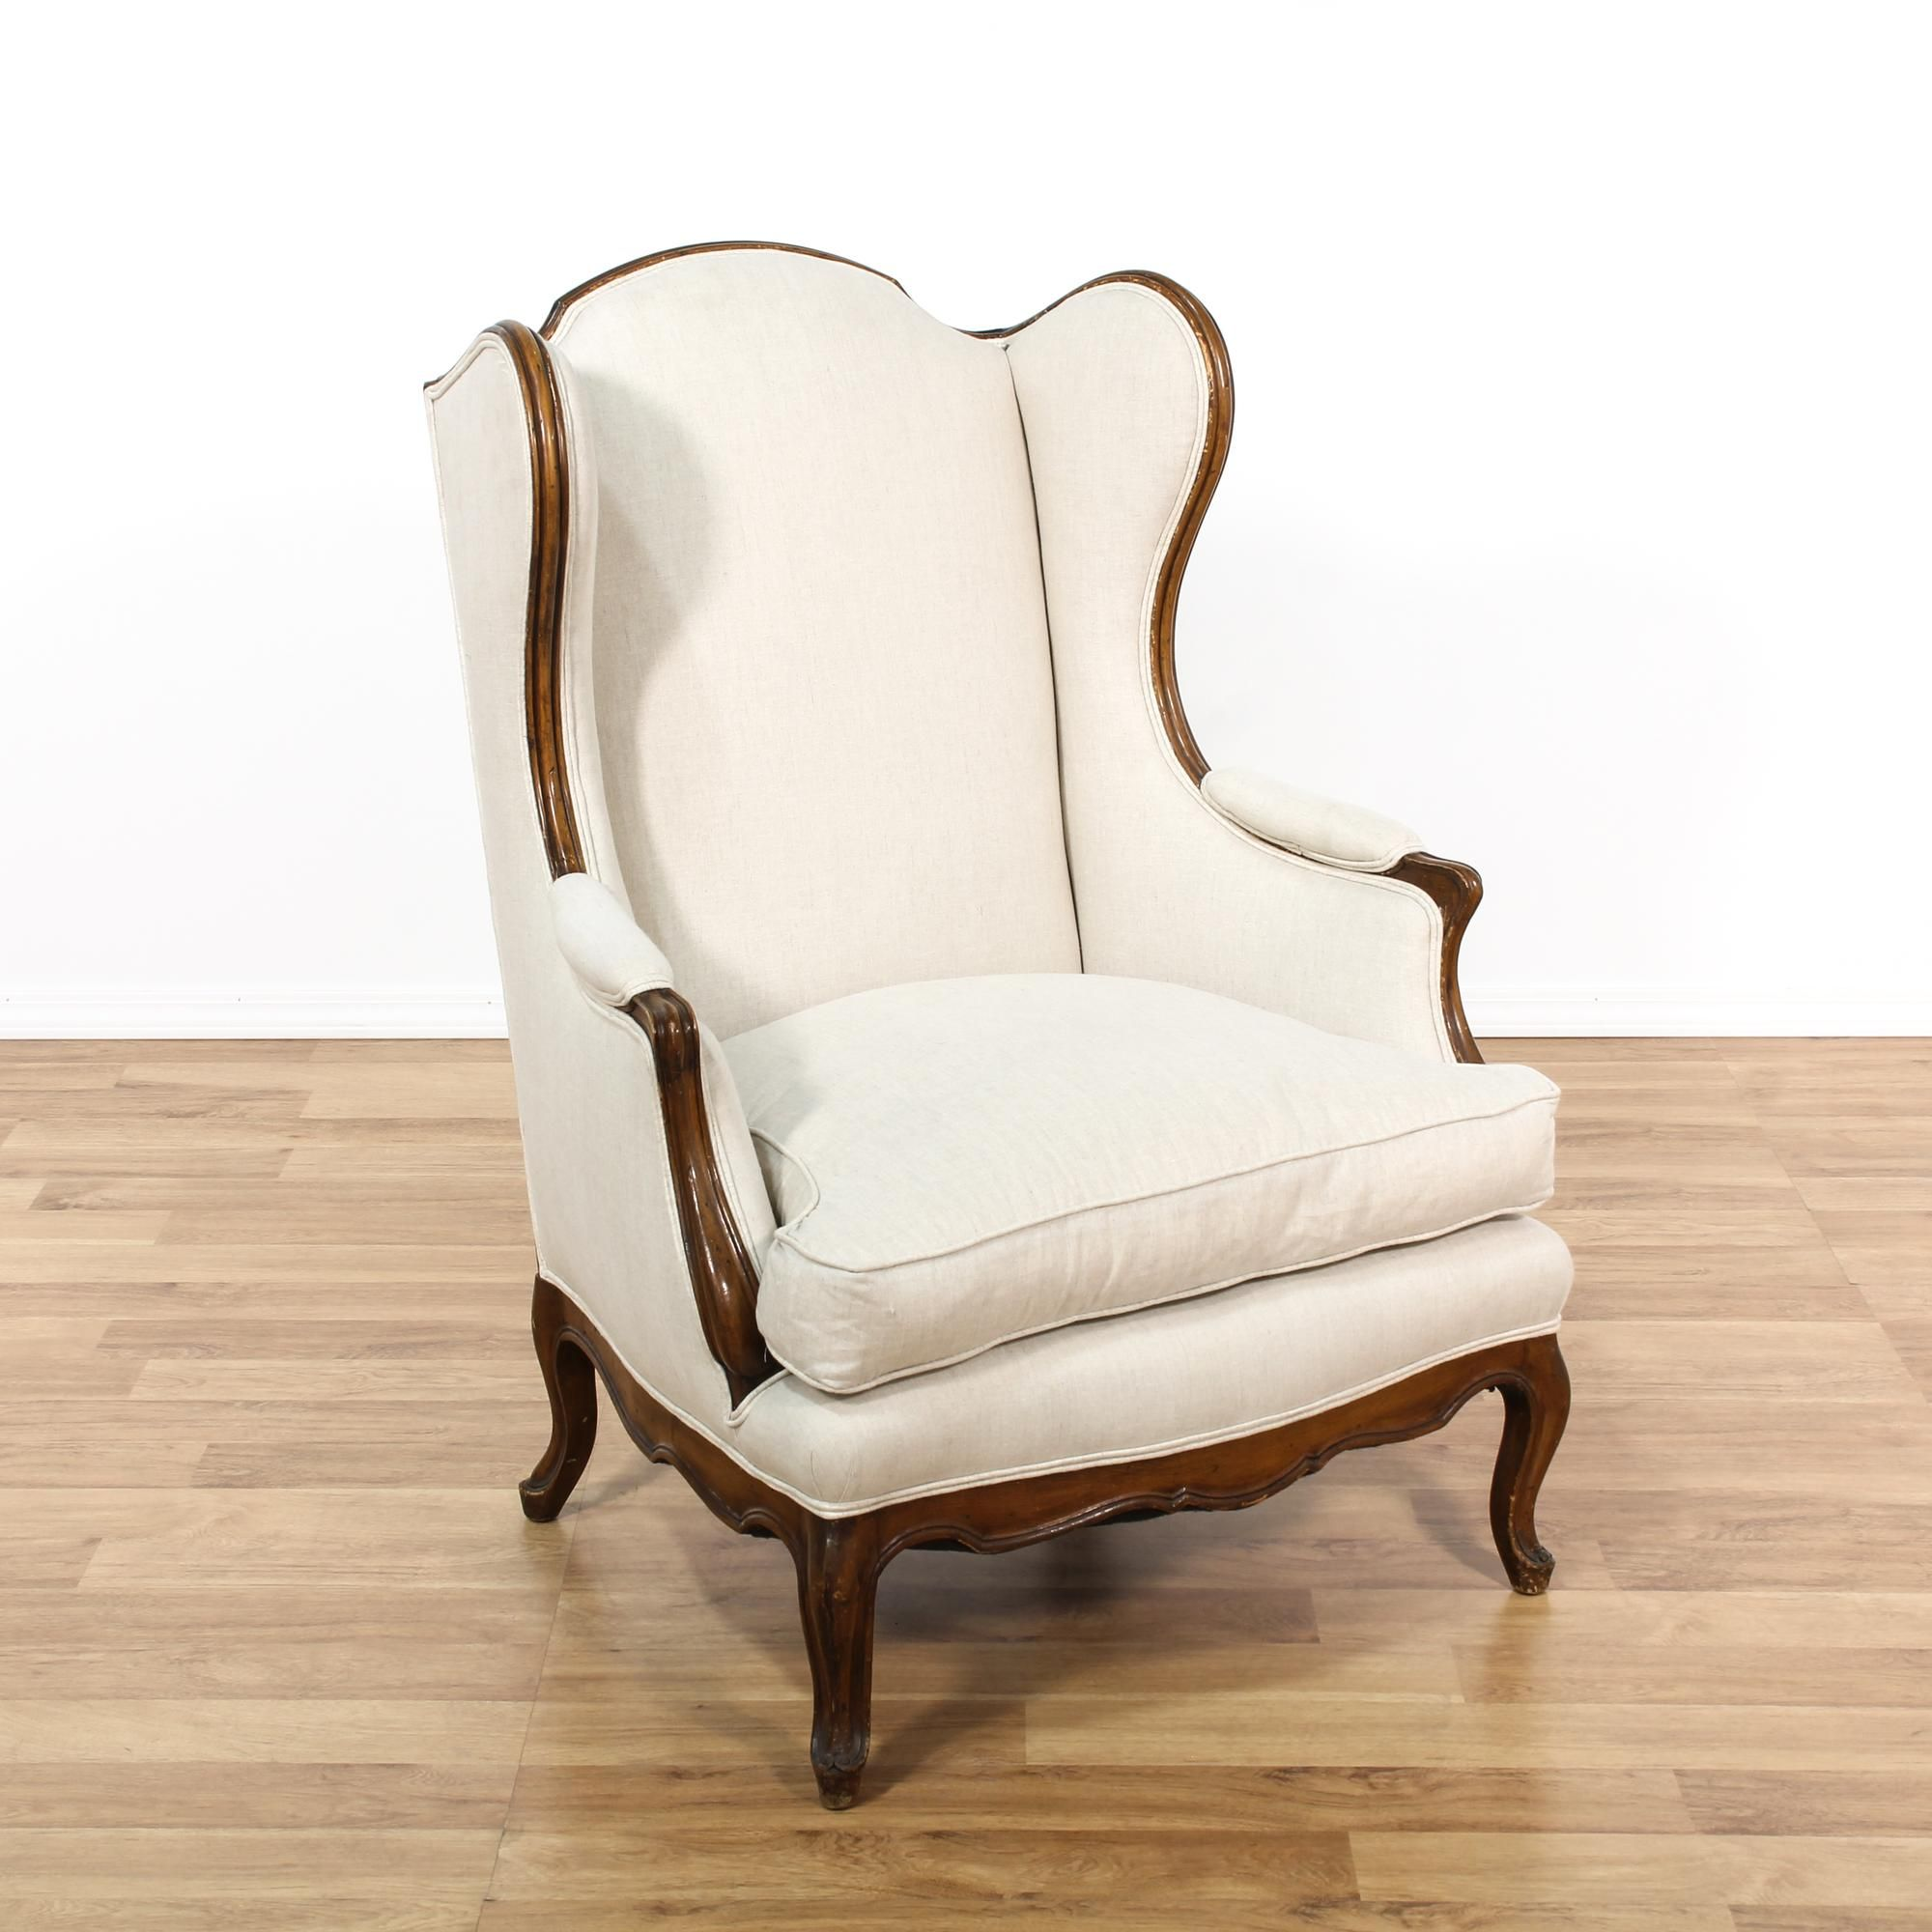 This cottage chic wingback chair is upholstered in a